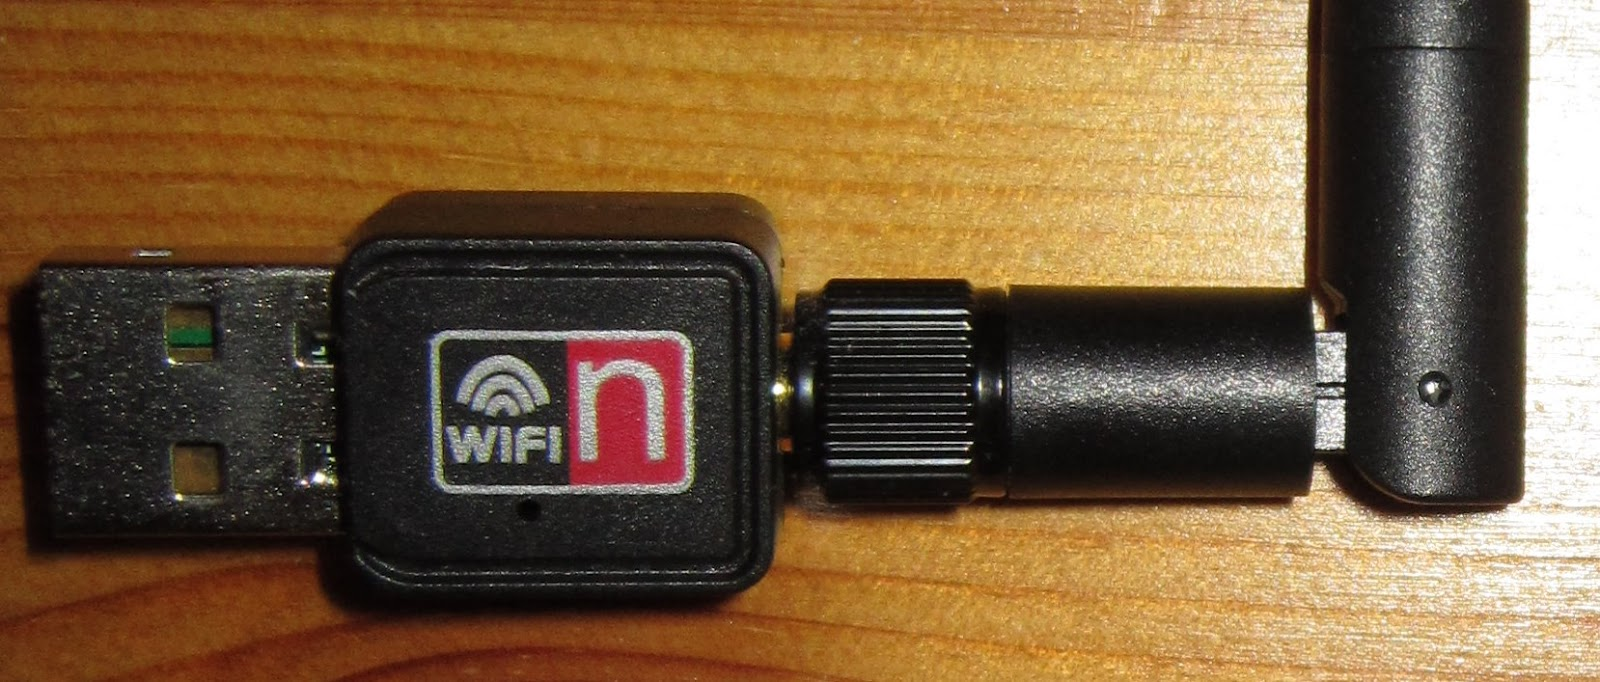 Wifi adapter for the Pi.